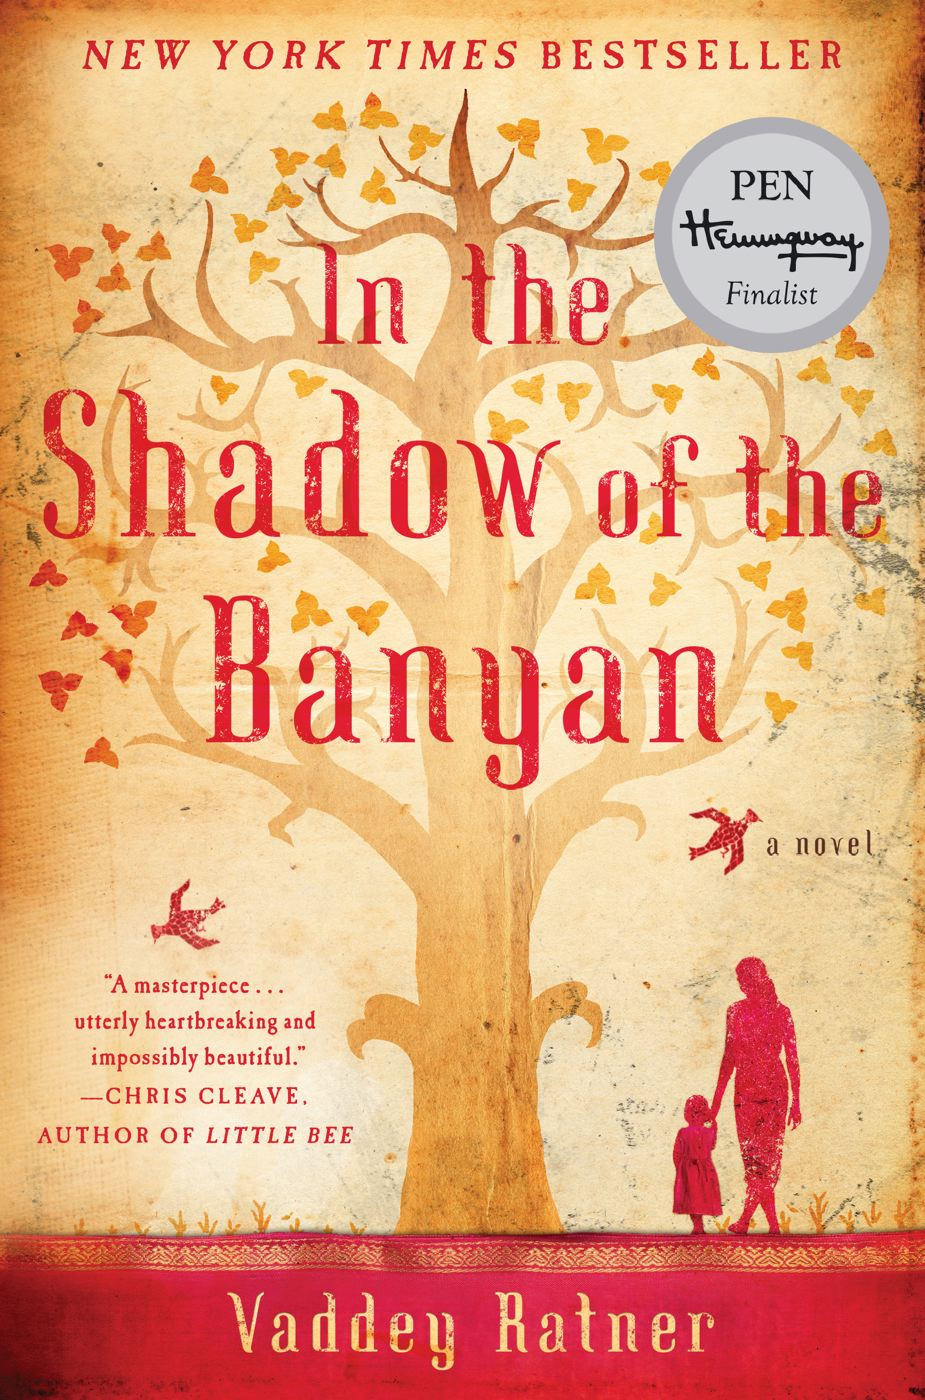 In the Shadow of the Banyan By: Vaddey Ratner